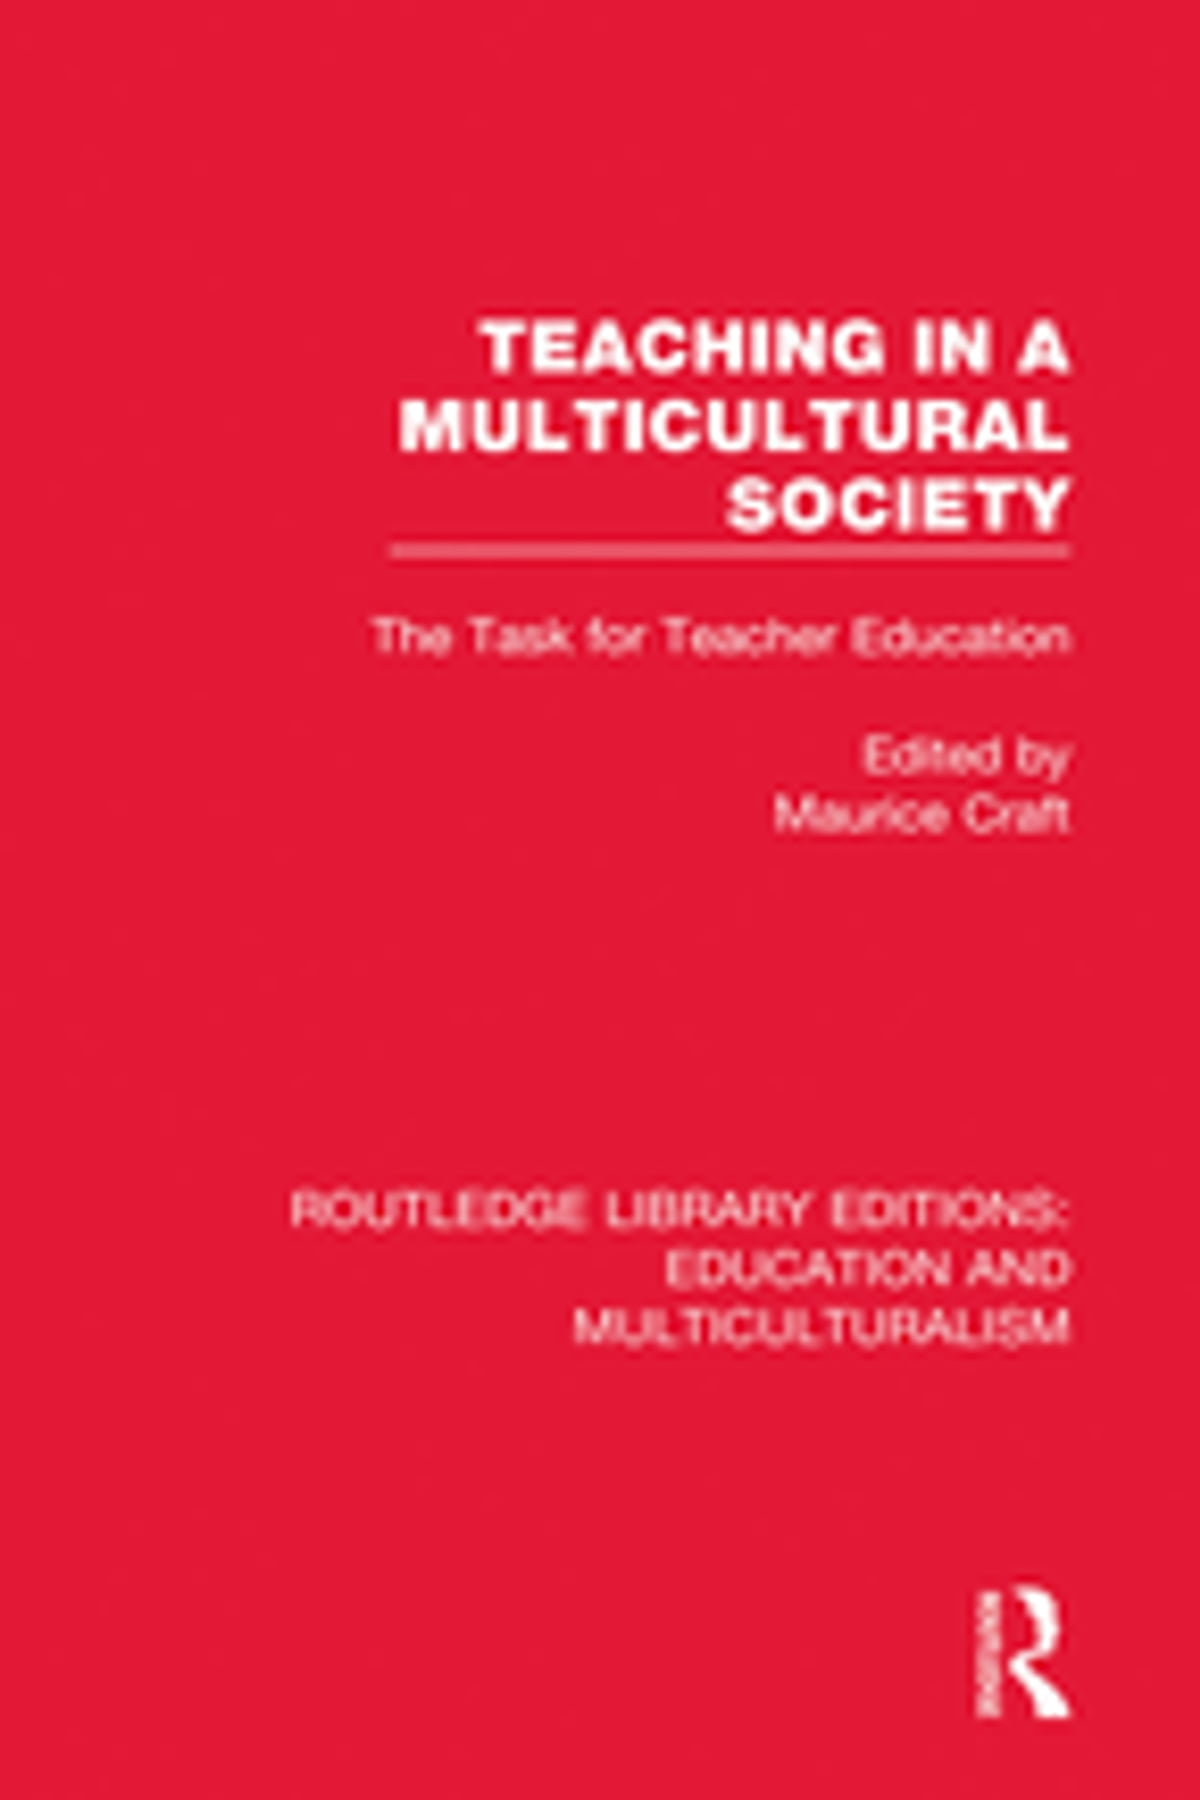 pablo freires view on teaching in modern american society David galloway was born on 5 may 1937 in memphis,  while teaching at the ruhr university,  ten modern american short stories (1968) melody jones.